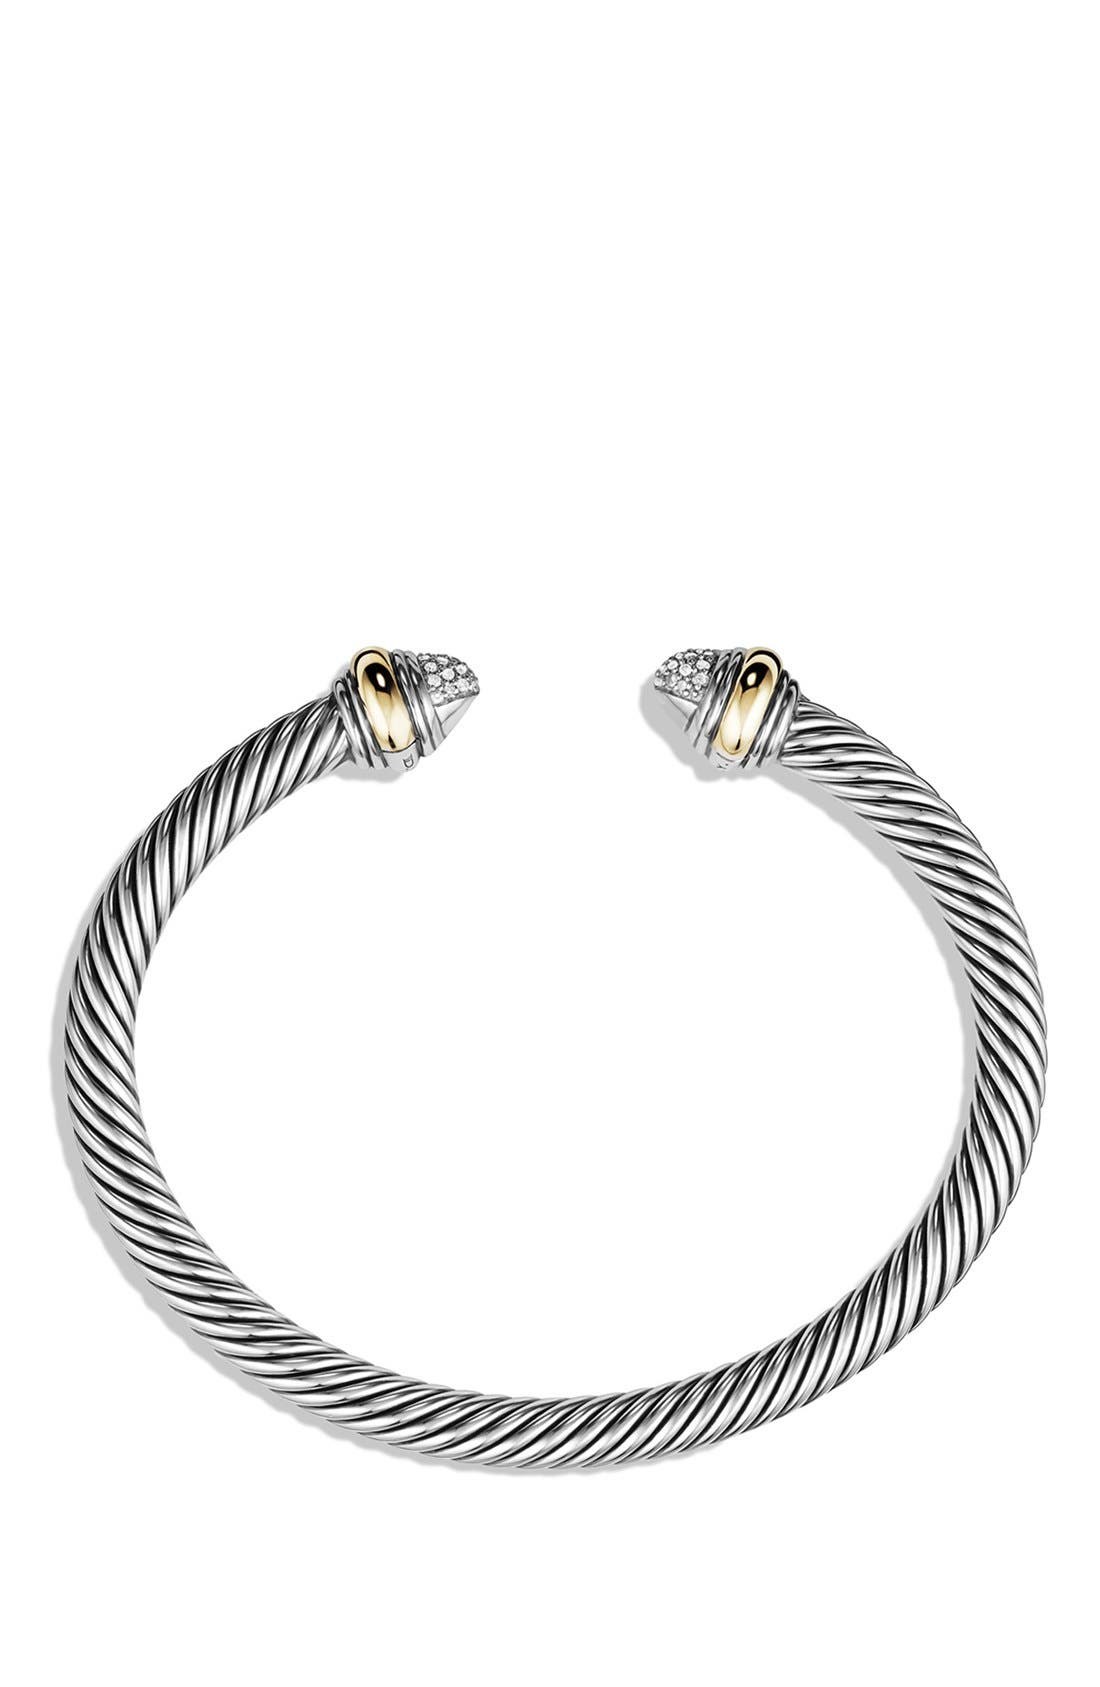 Cable Classics Bracelet with Diamonds & 14K Gold, 5mm,                             Alternate thumbnail 2, color,                             Diamond